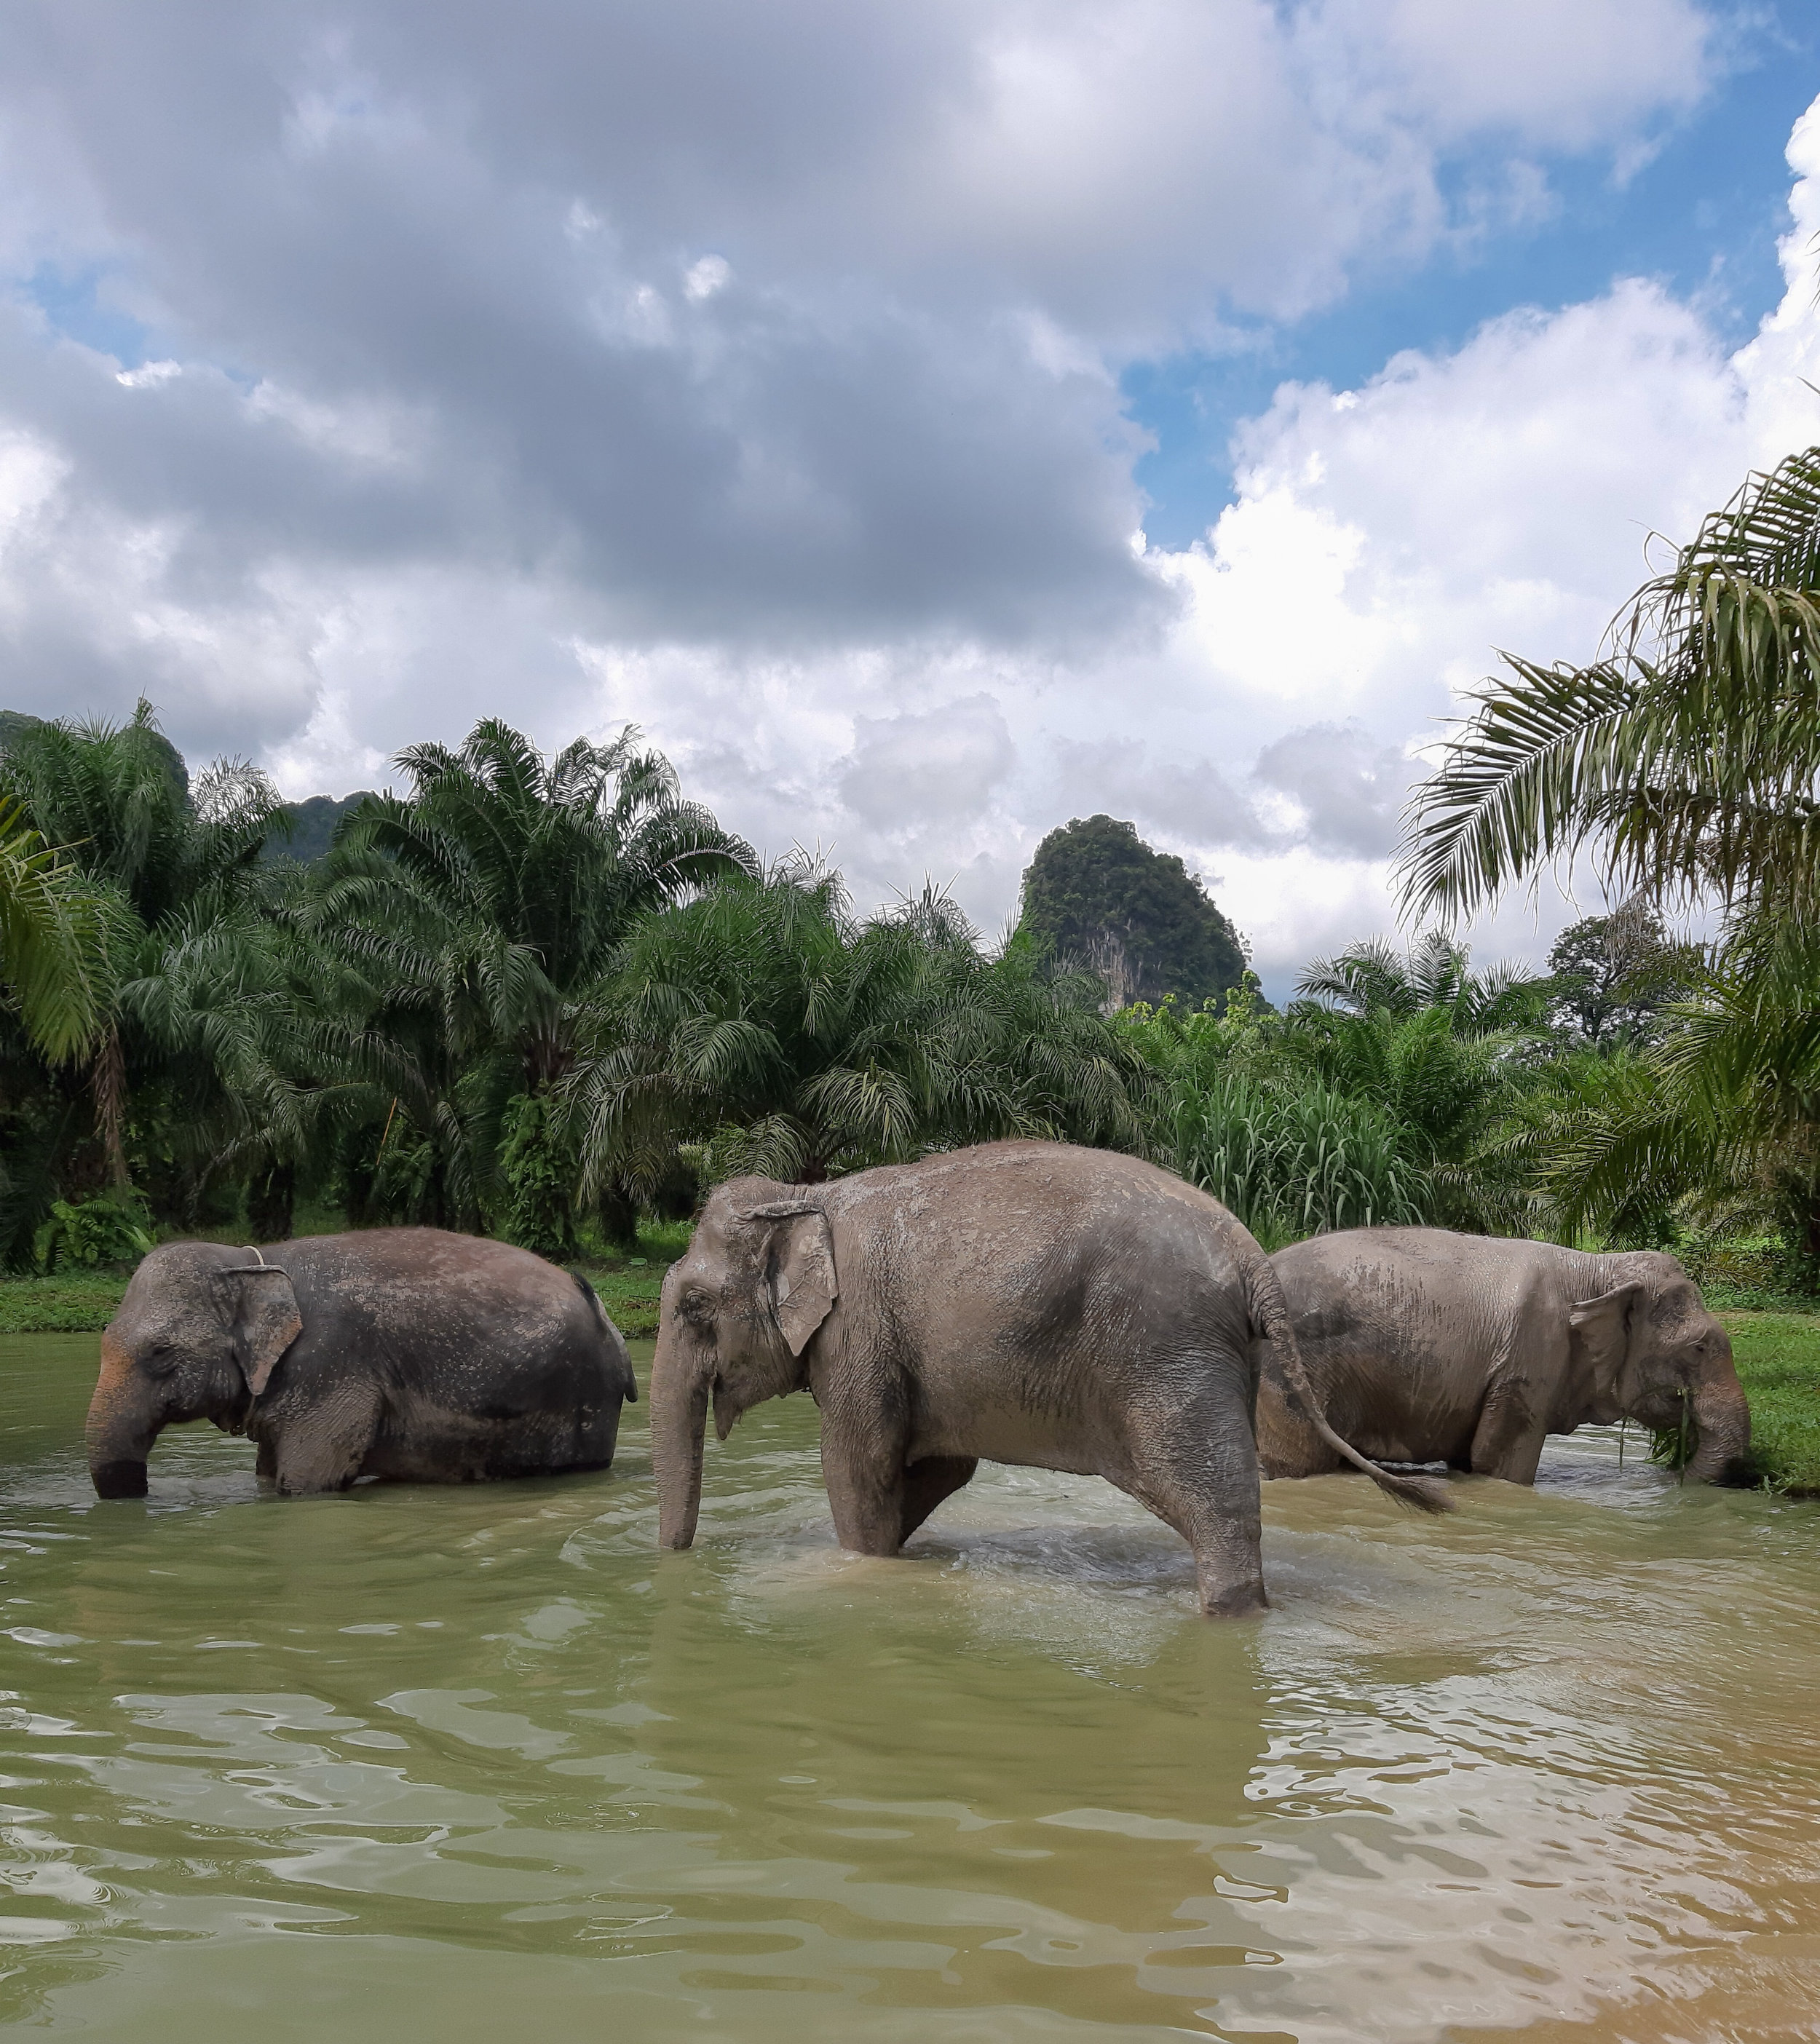 elephants-bathing-thailand-krabi_1.jpg